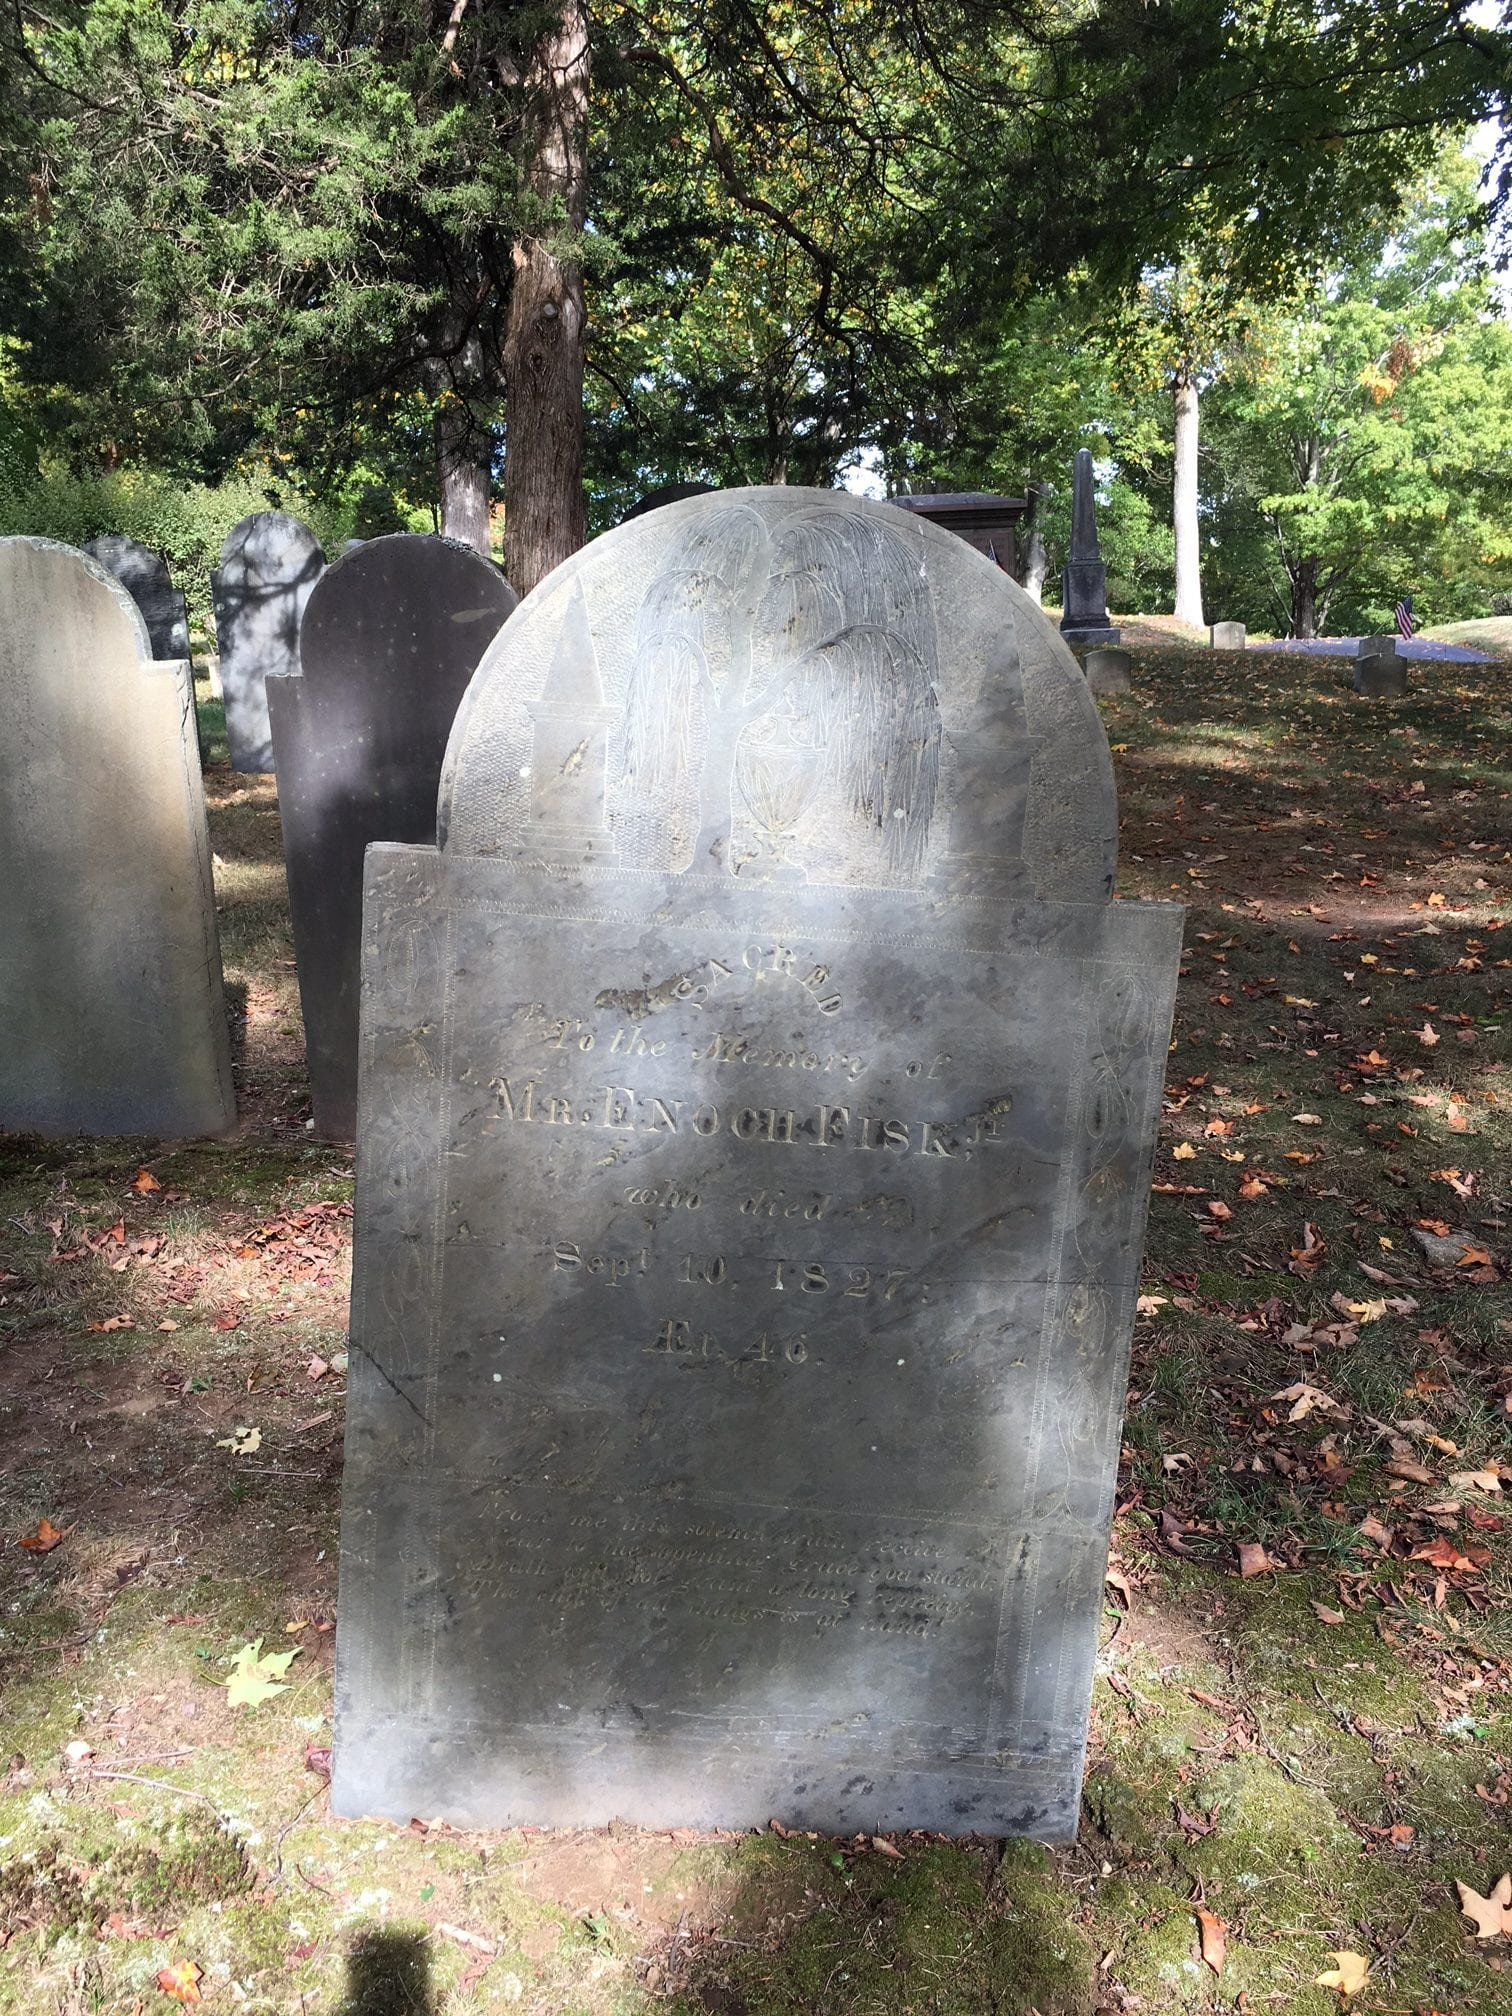 Mr. Enoch Fisk, Jr.: From me this solemn truth receive Near to the opening grave you stand; Death will not grant a long reprieve, The end of all things is at hand.